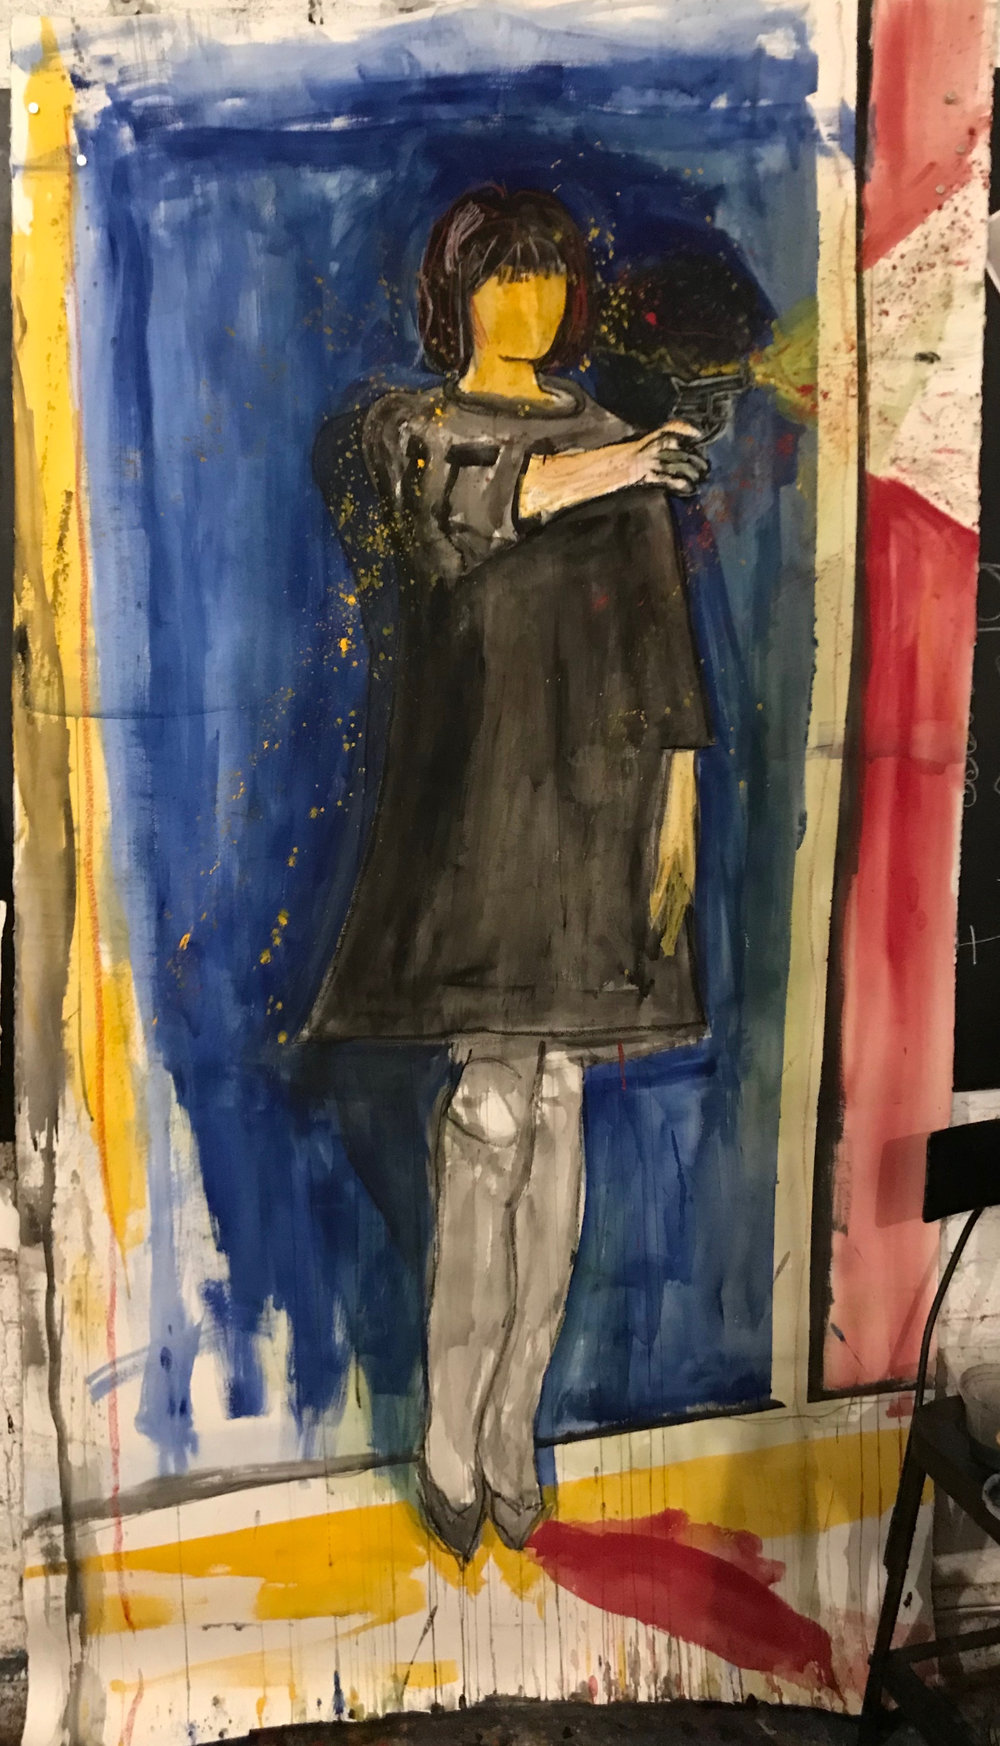 - Ron Silver paints a woman with a gun (New York, NY)